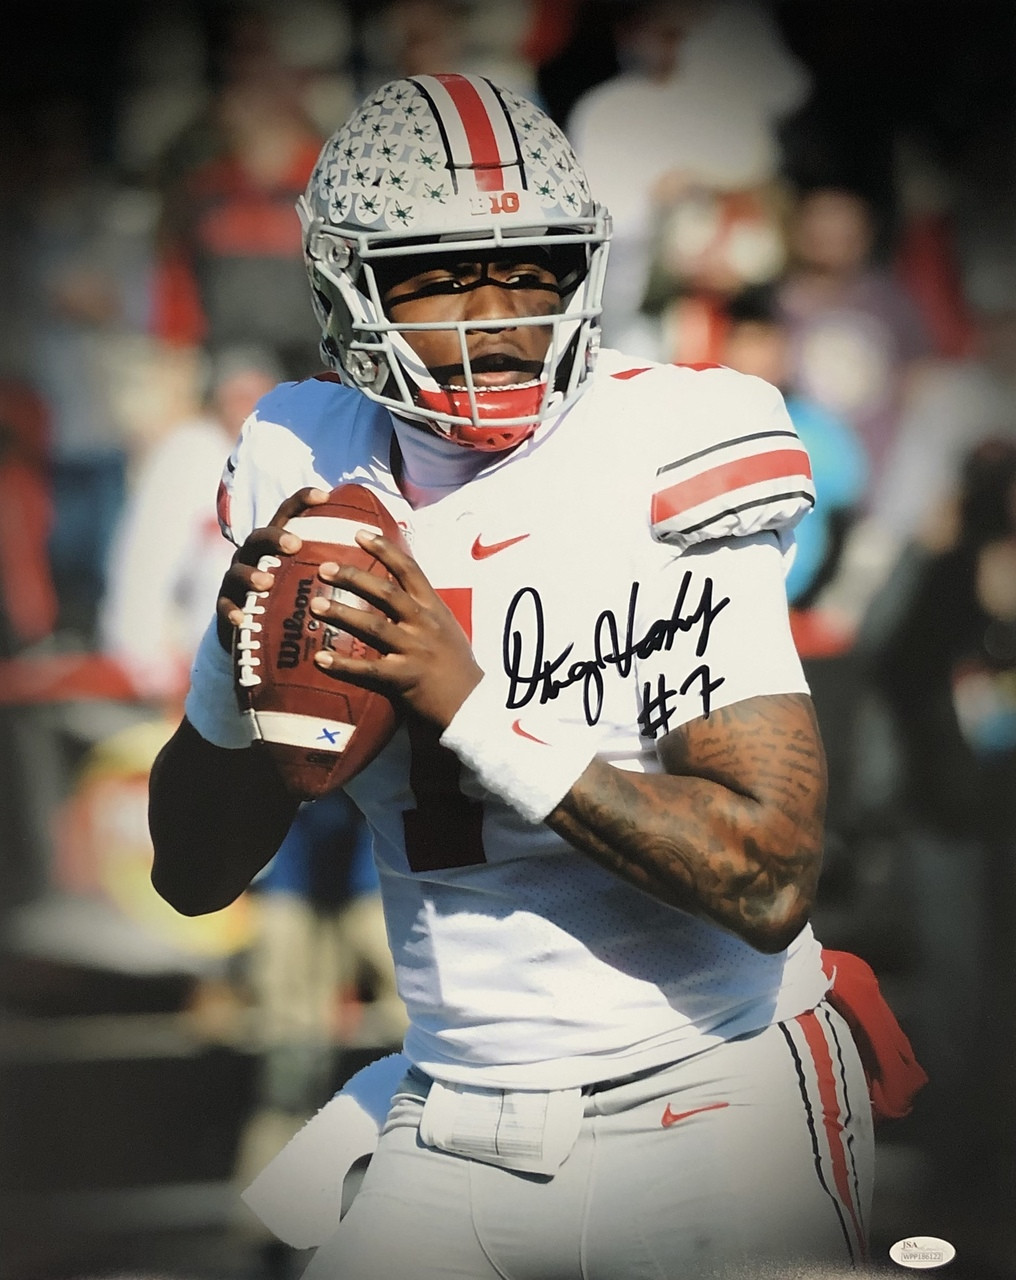 big sale 982bc 74166 Dwayne Haskins Ohio State Buckeyes 16-1 16x20 Autographed Photo - Certified  Authentic